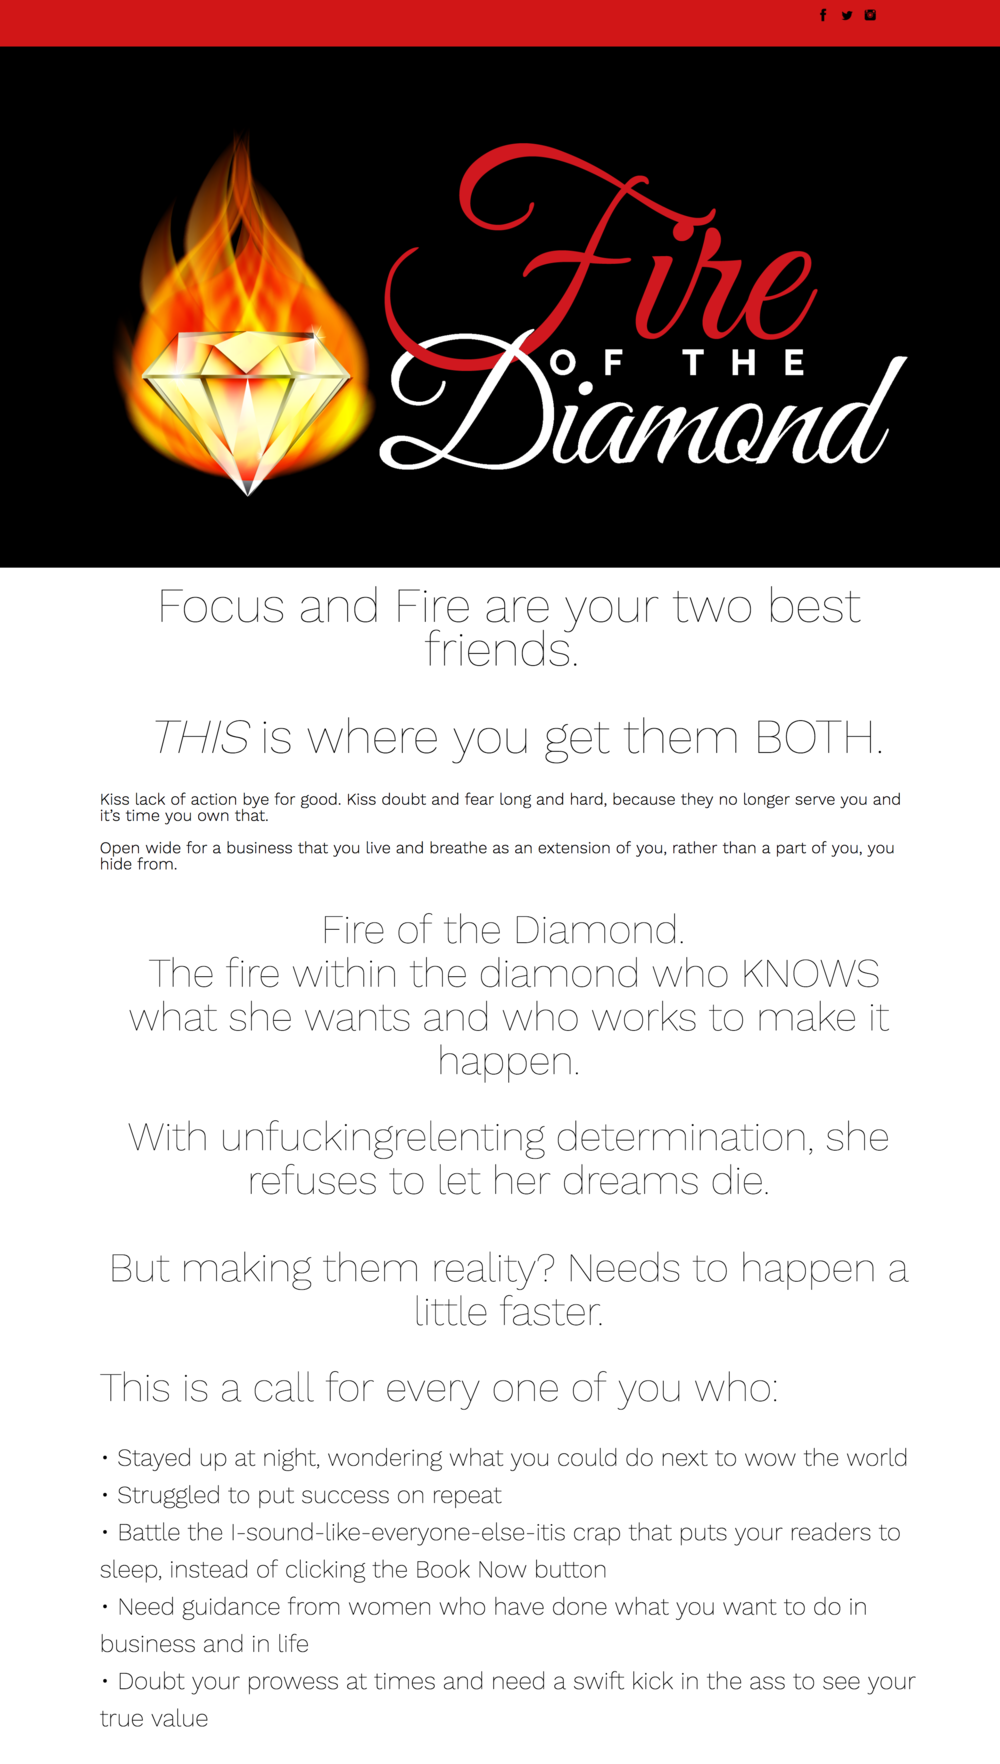 Fire of the Diamond - Ontrapages